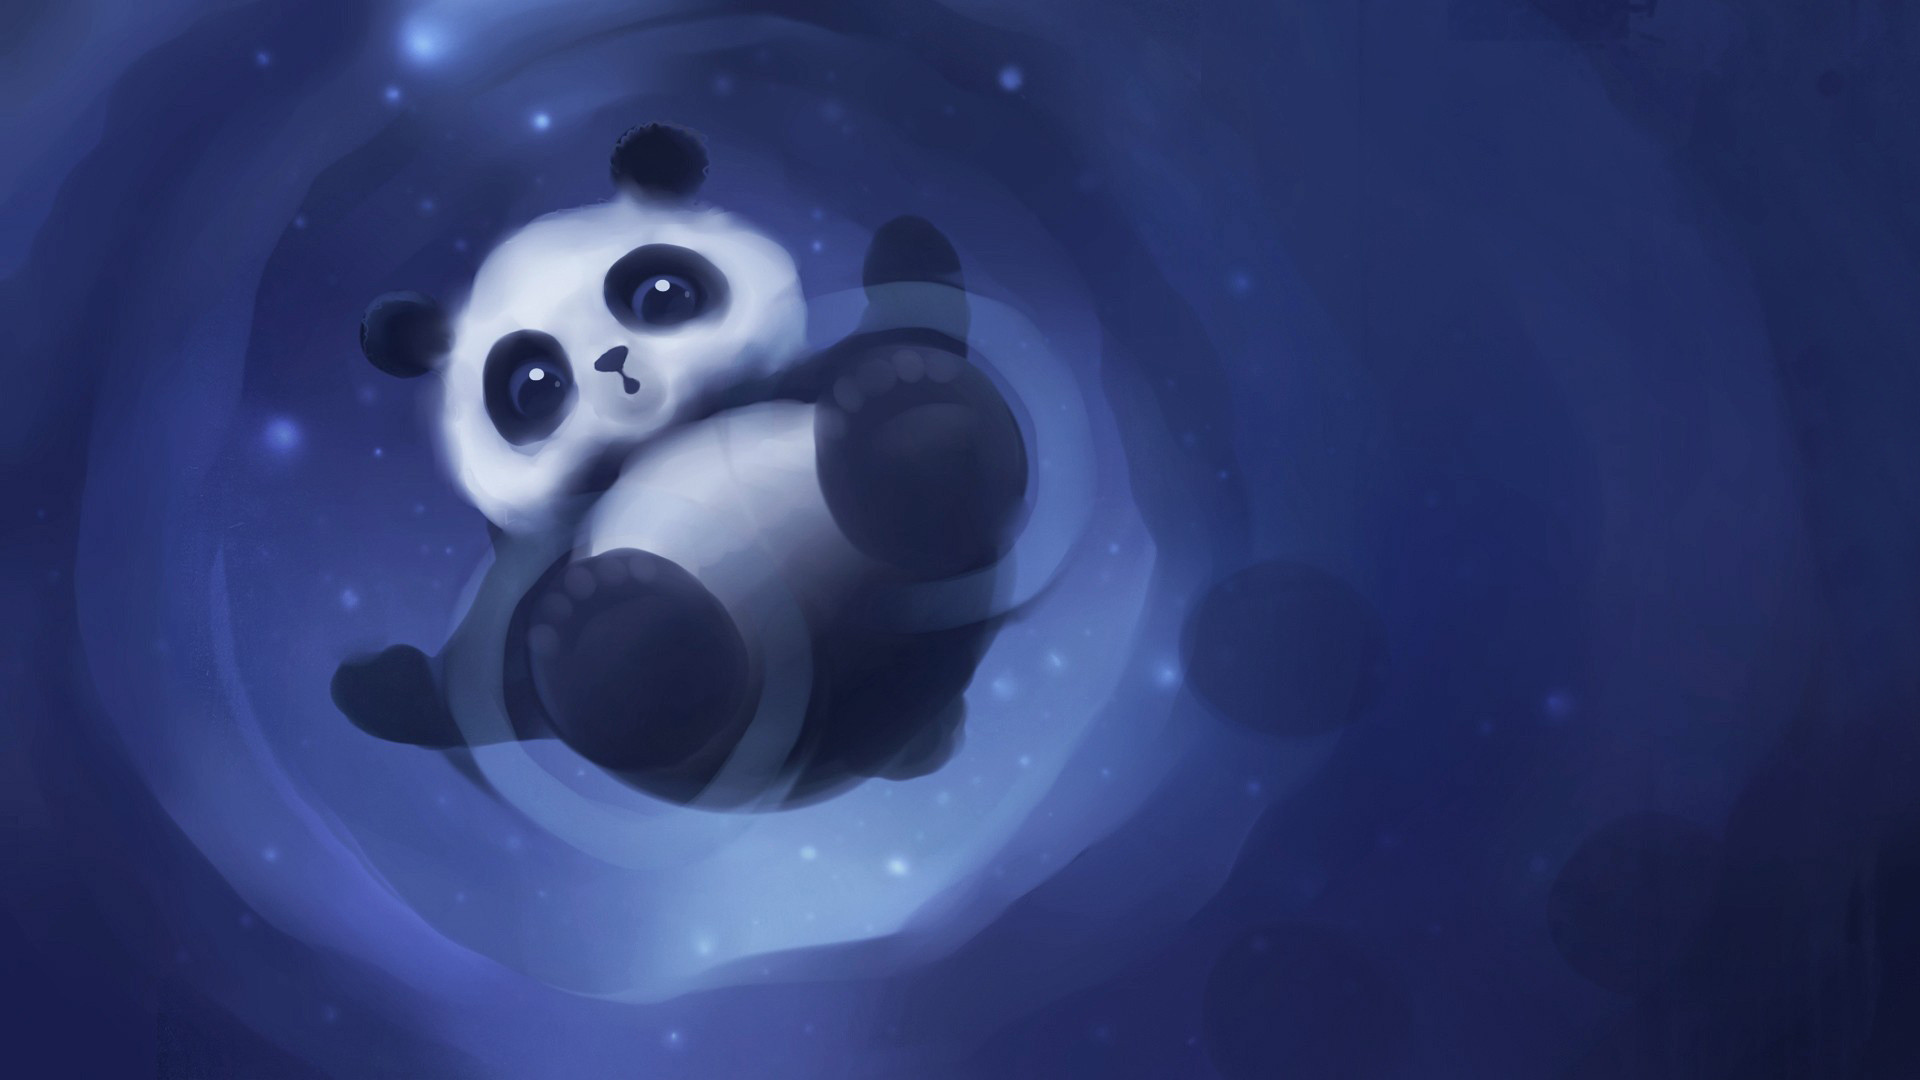 Res: 1920x1080,  Anime Panda Wallpapers Desktop Background with High Definition  Wallpaper Resolution  px 164.61 KB Anime